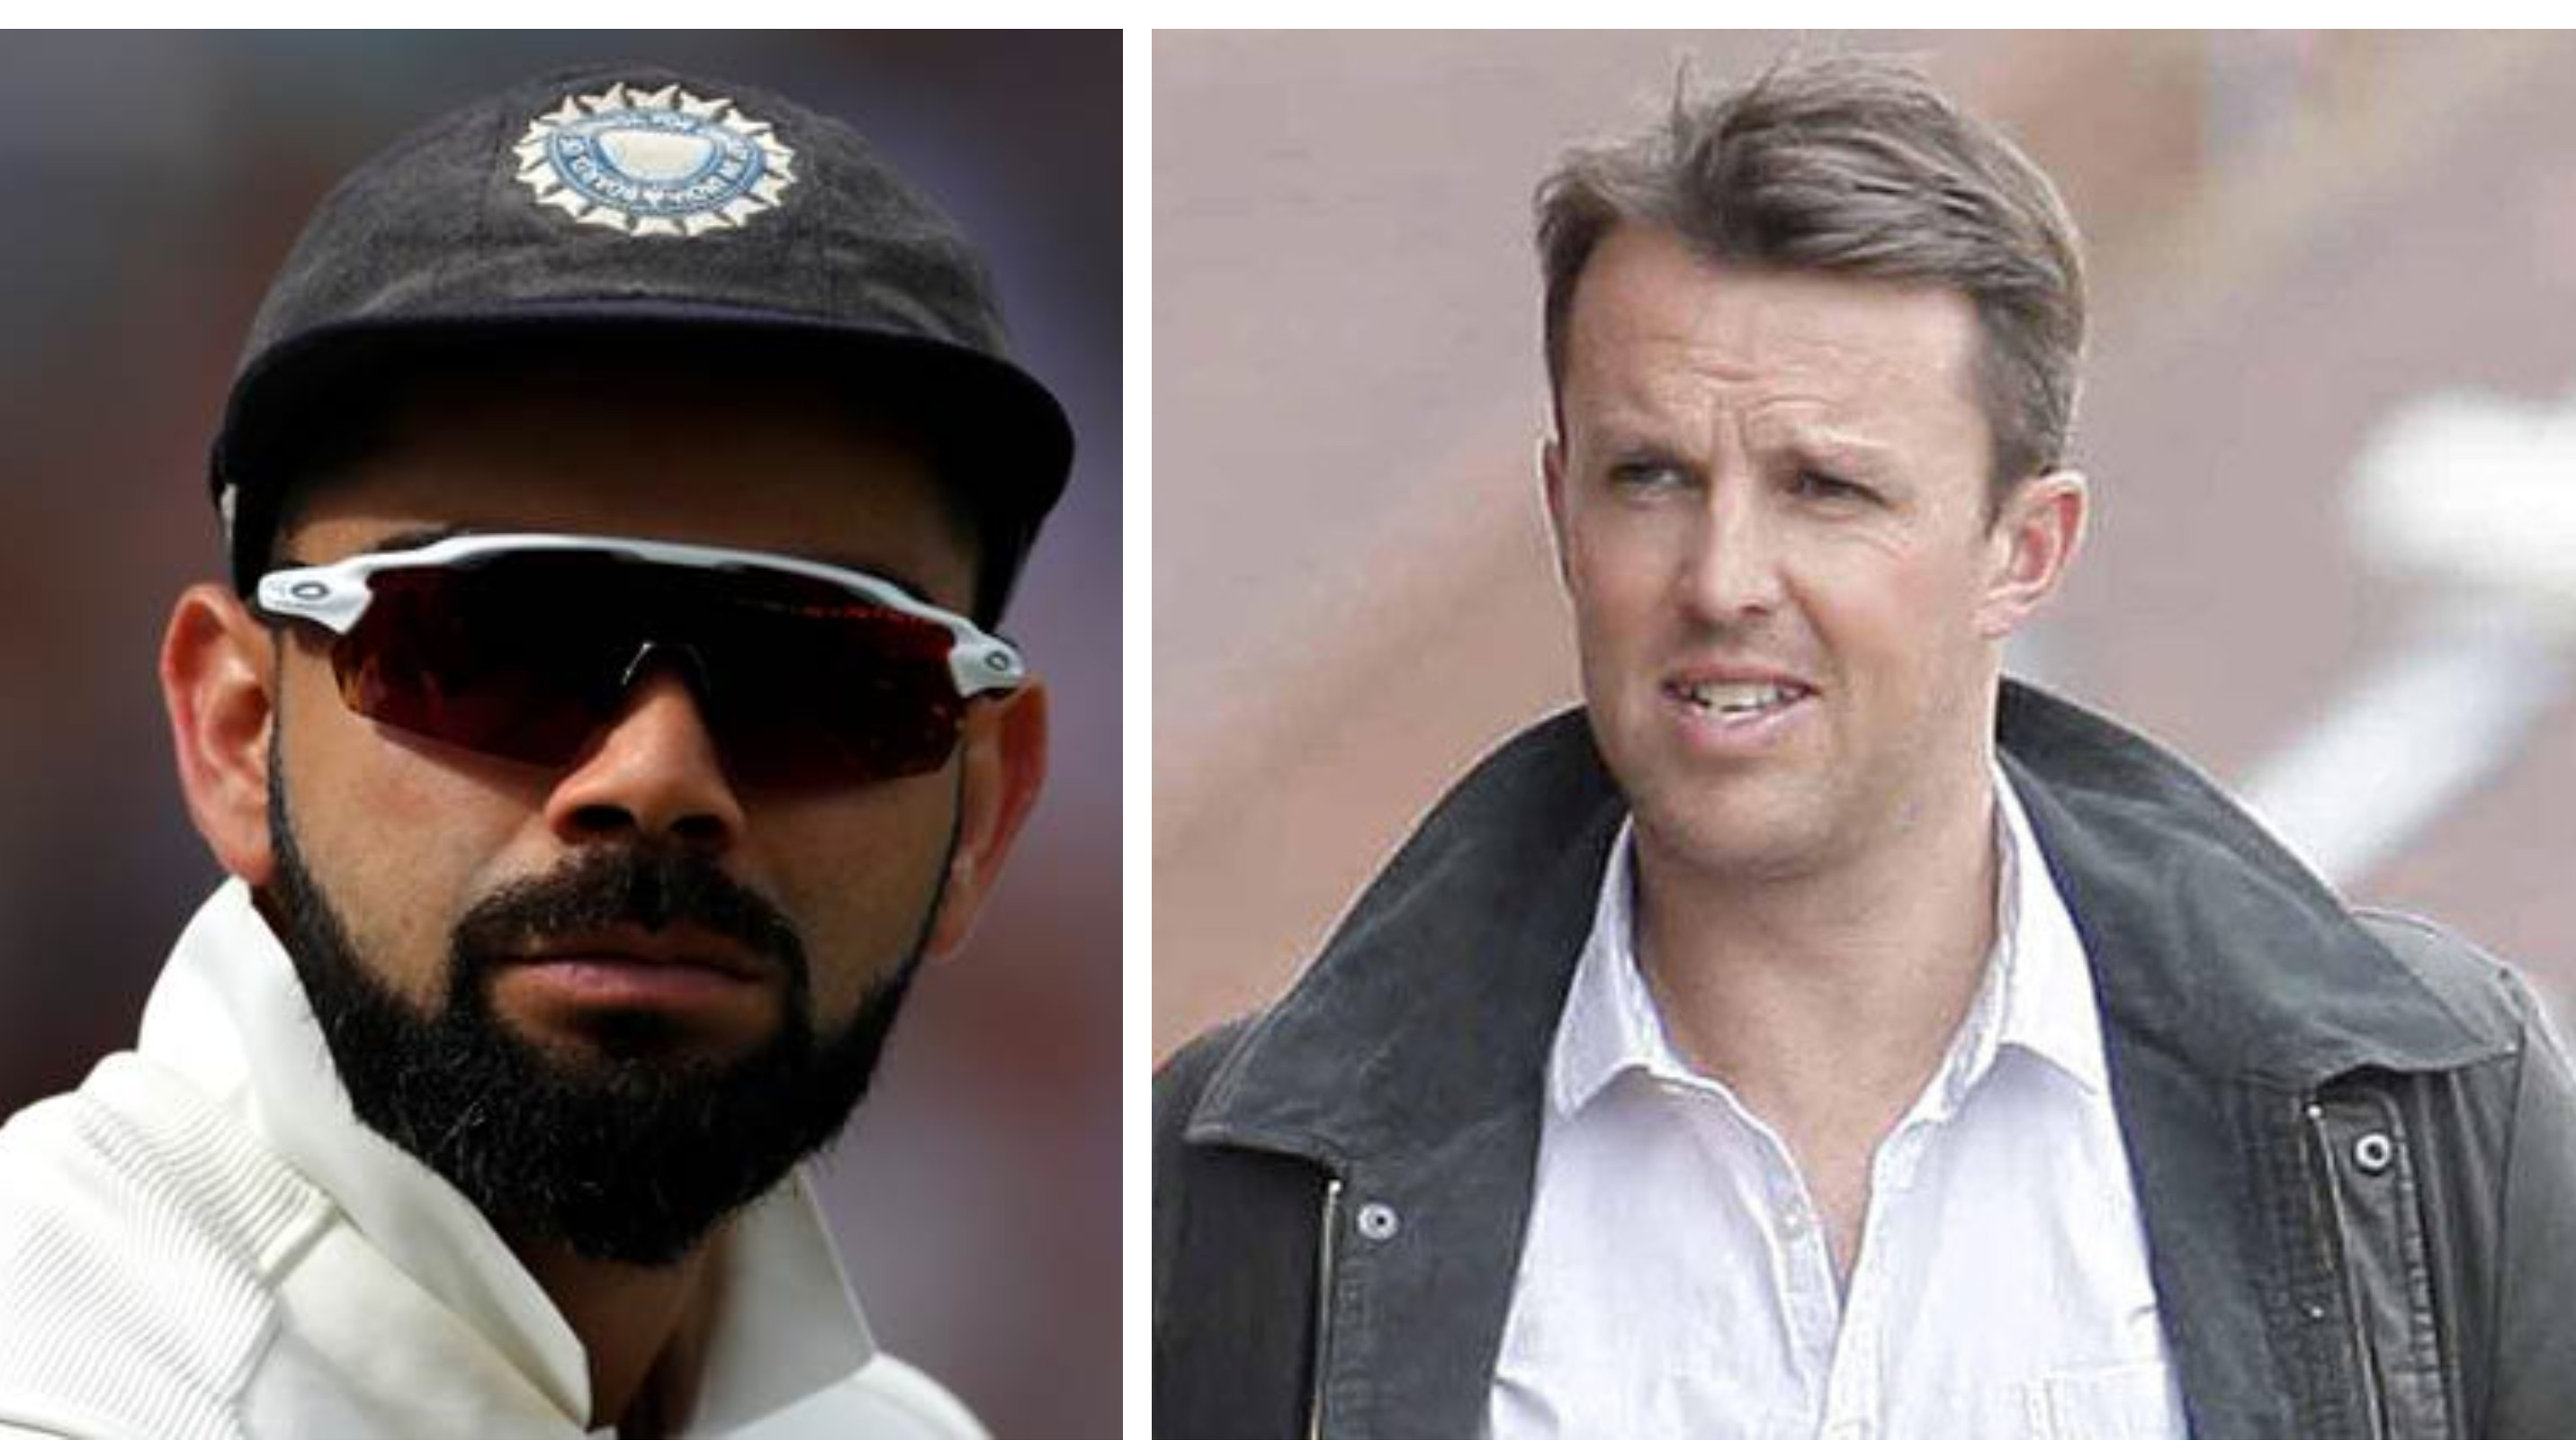 ENG vs IND 2018: It is Virat Kohli's attitude which stands out, says Graeme Swann